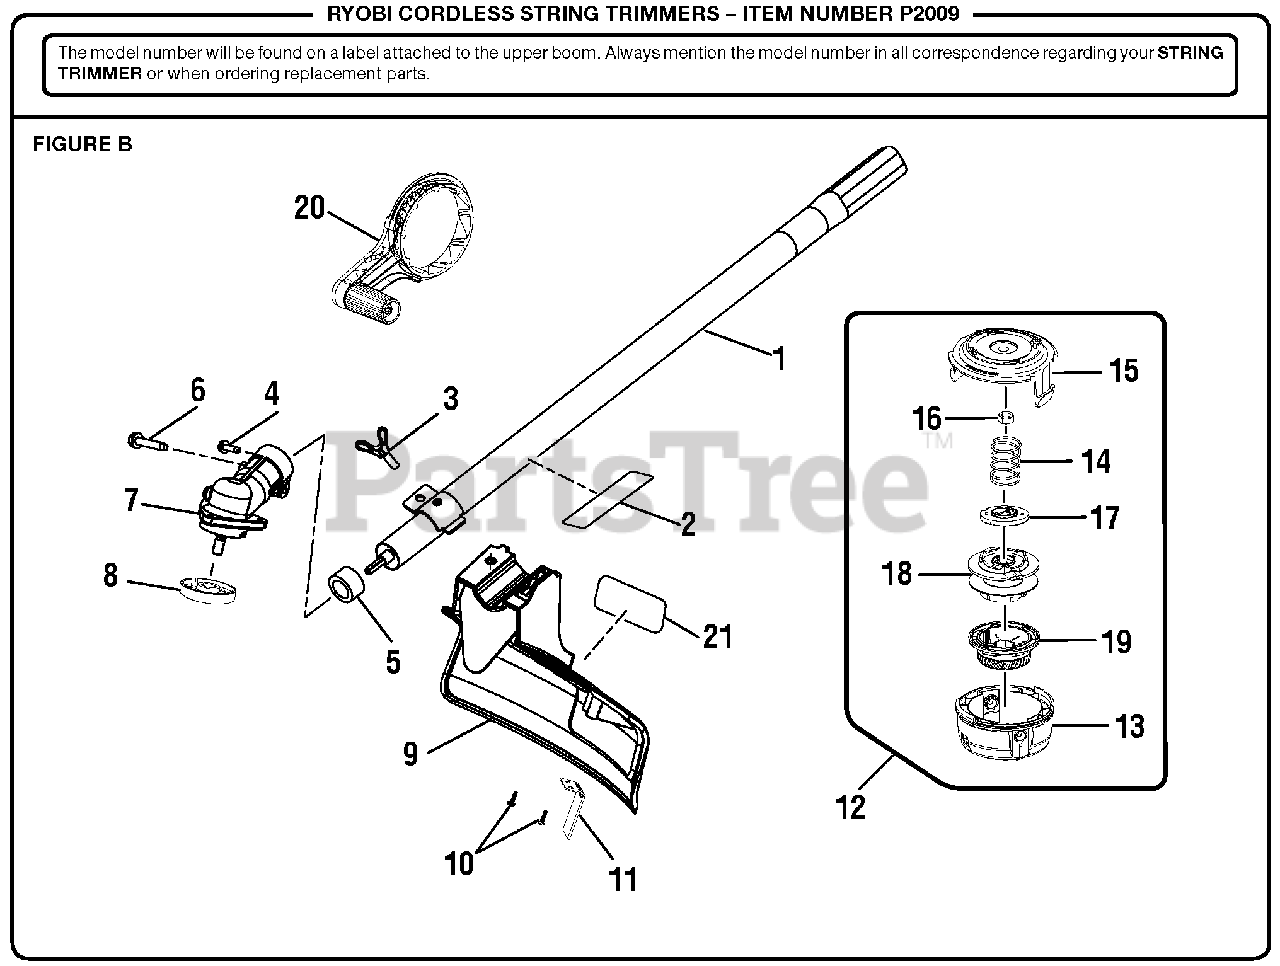 311291004 Motor Assembly Off A Ryobi P2009 Cordless String Trimmer